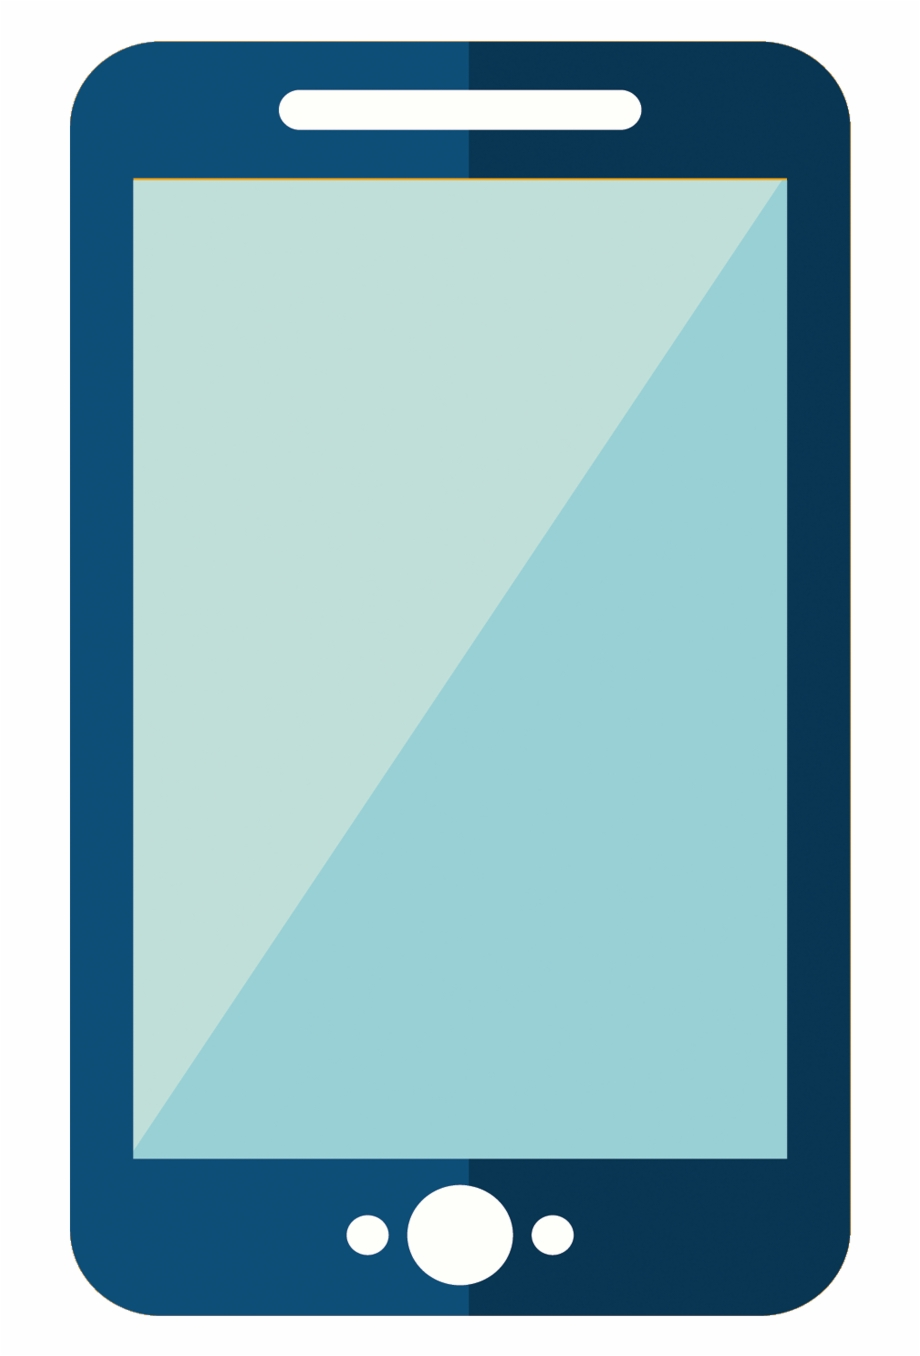 Cell Phone Icon Png Free.